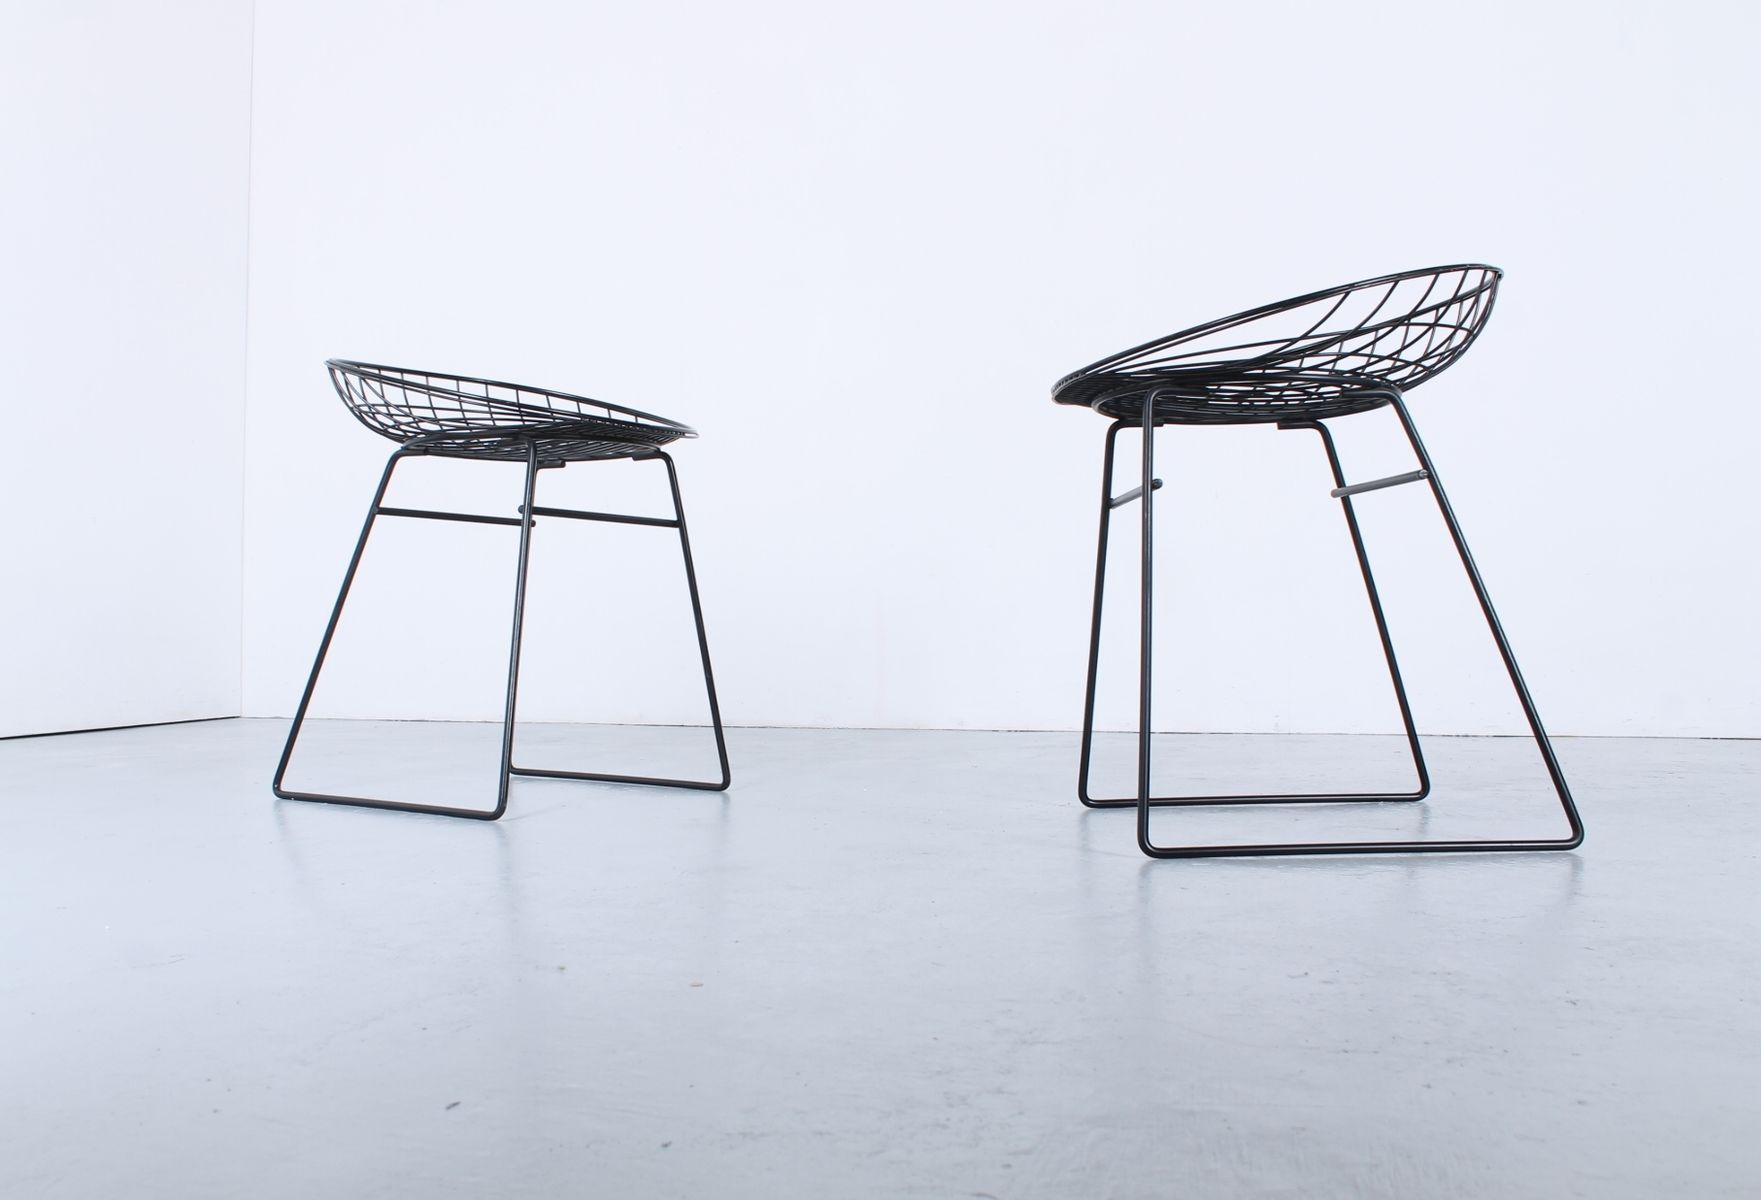 Black Metal Wire Stools by Cees Braakman for Pastoe 1950s Set of 2 & Black Metal Wire Stools by Cees Braakman for Pastoe 1950s Set of ... islam-shia.org